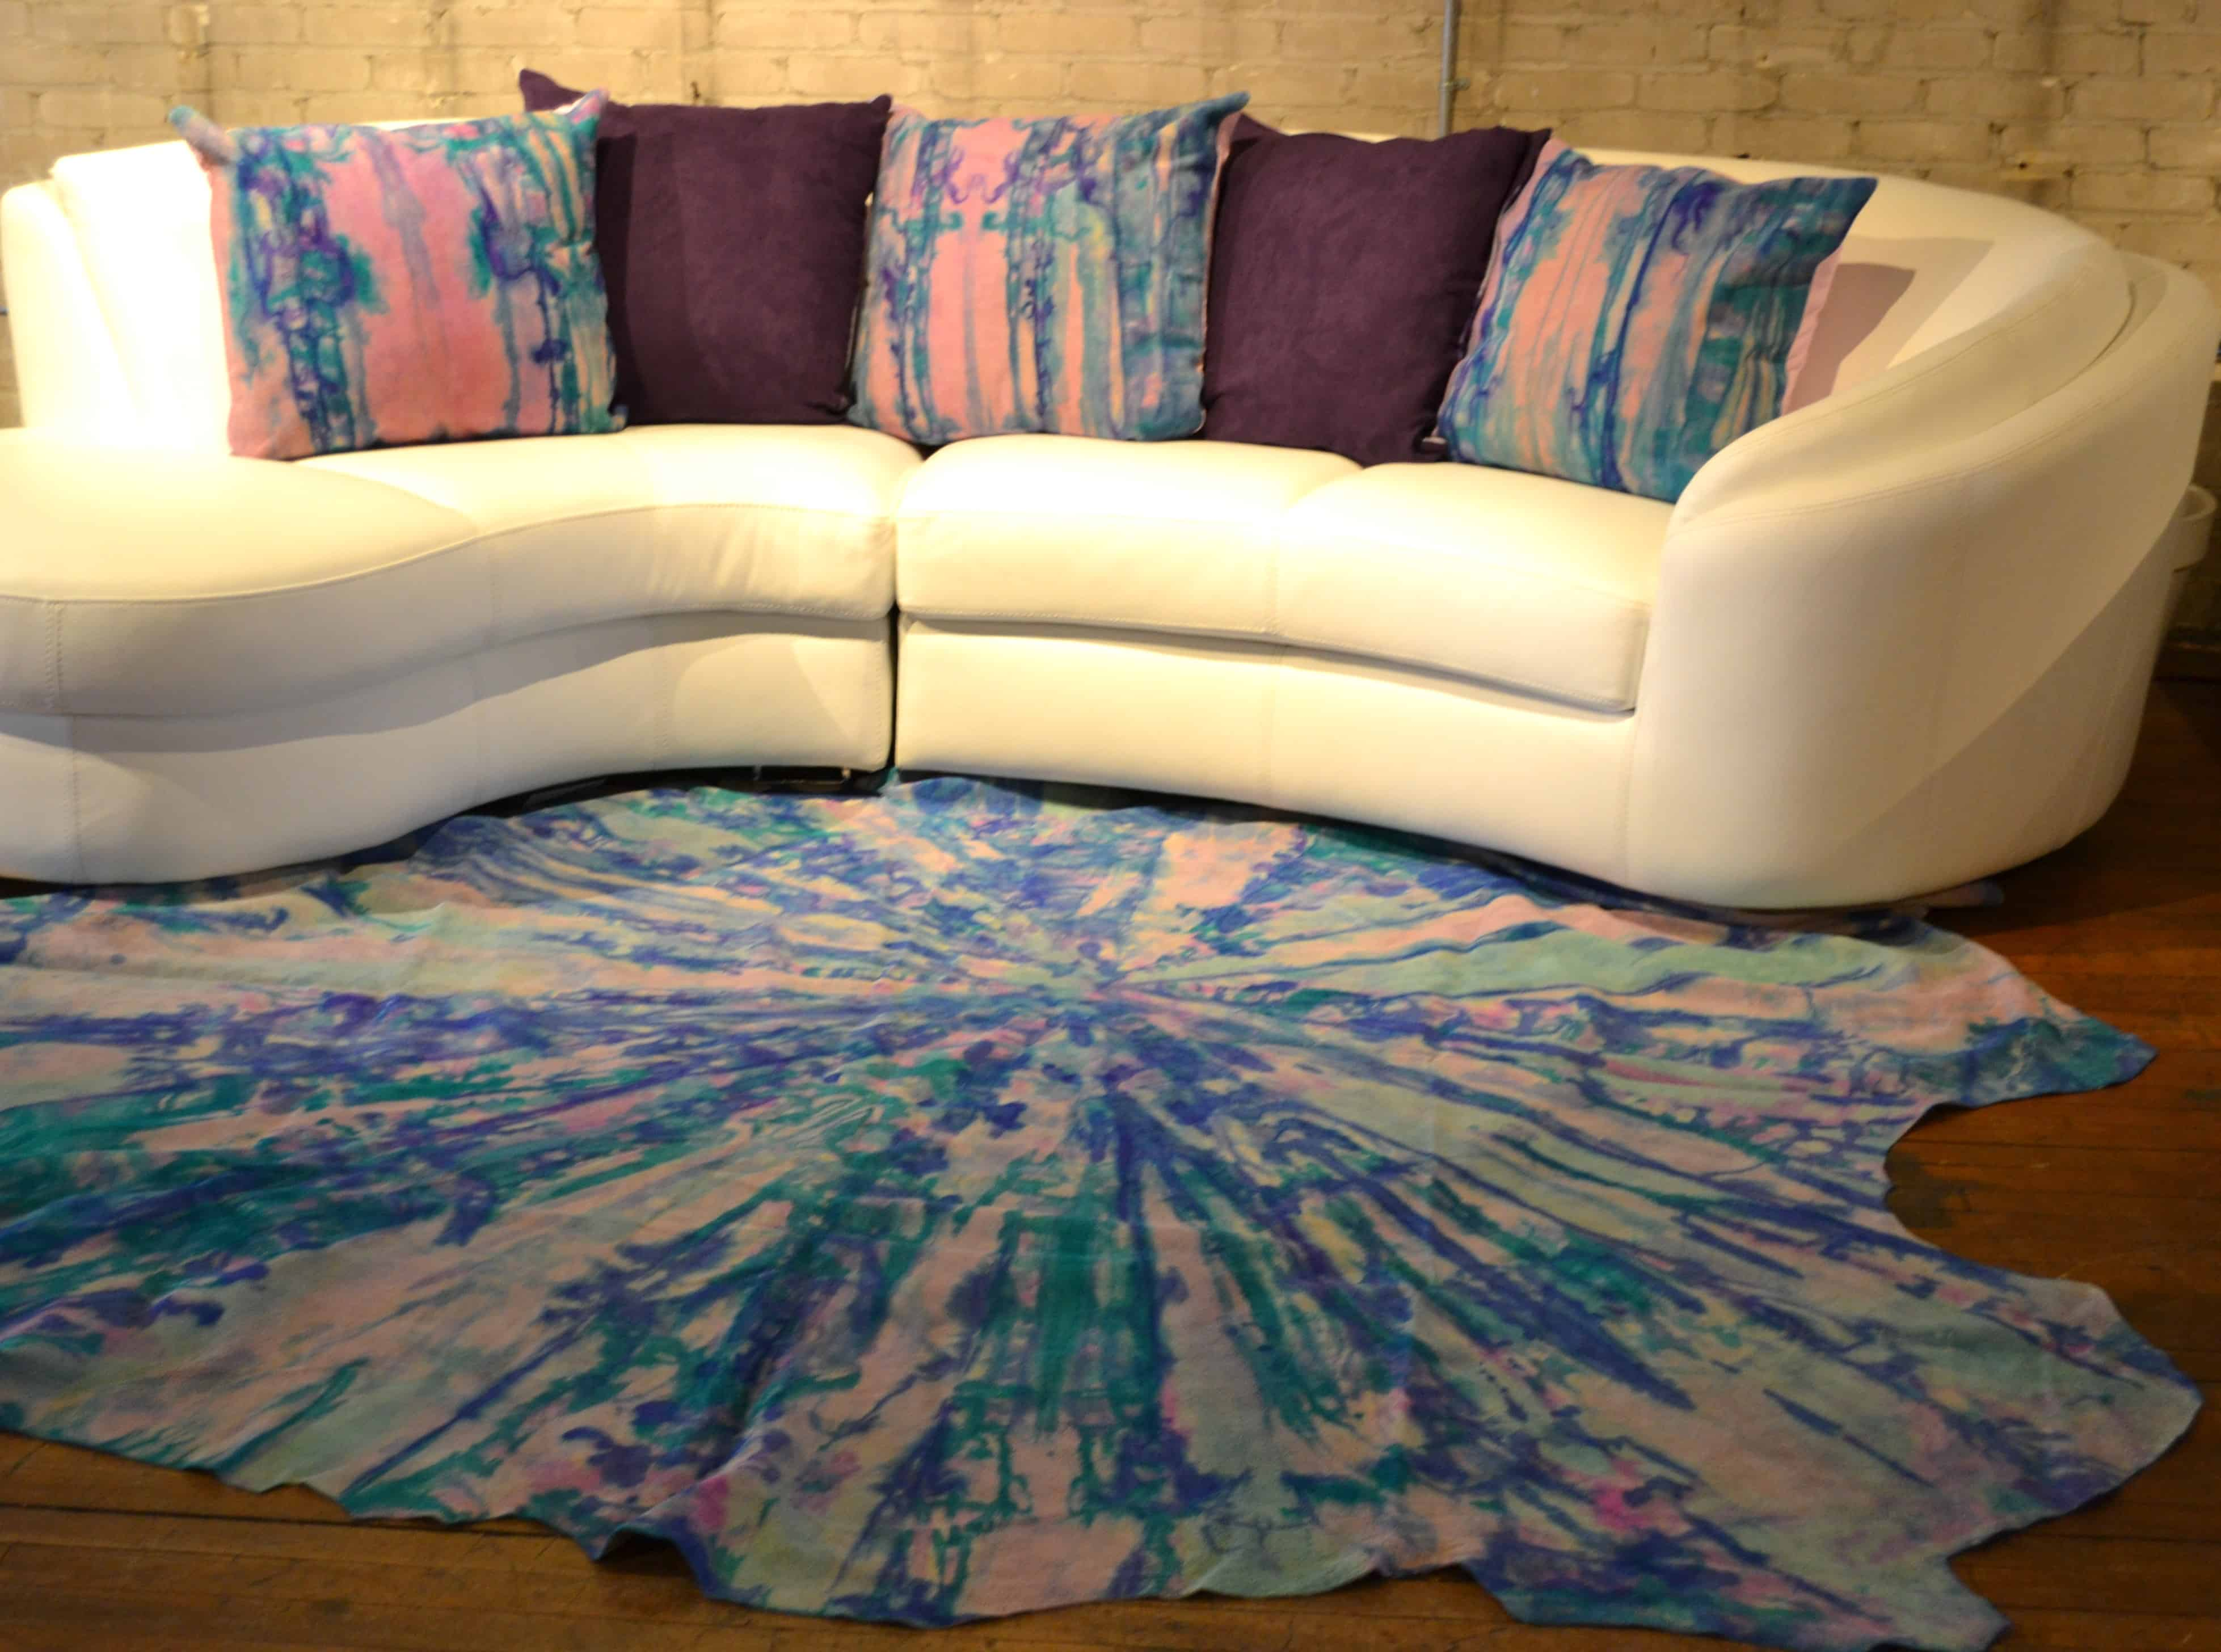 Hand Painted One of a Kind Cowhide Rug and Pillows